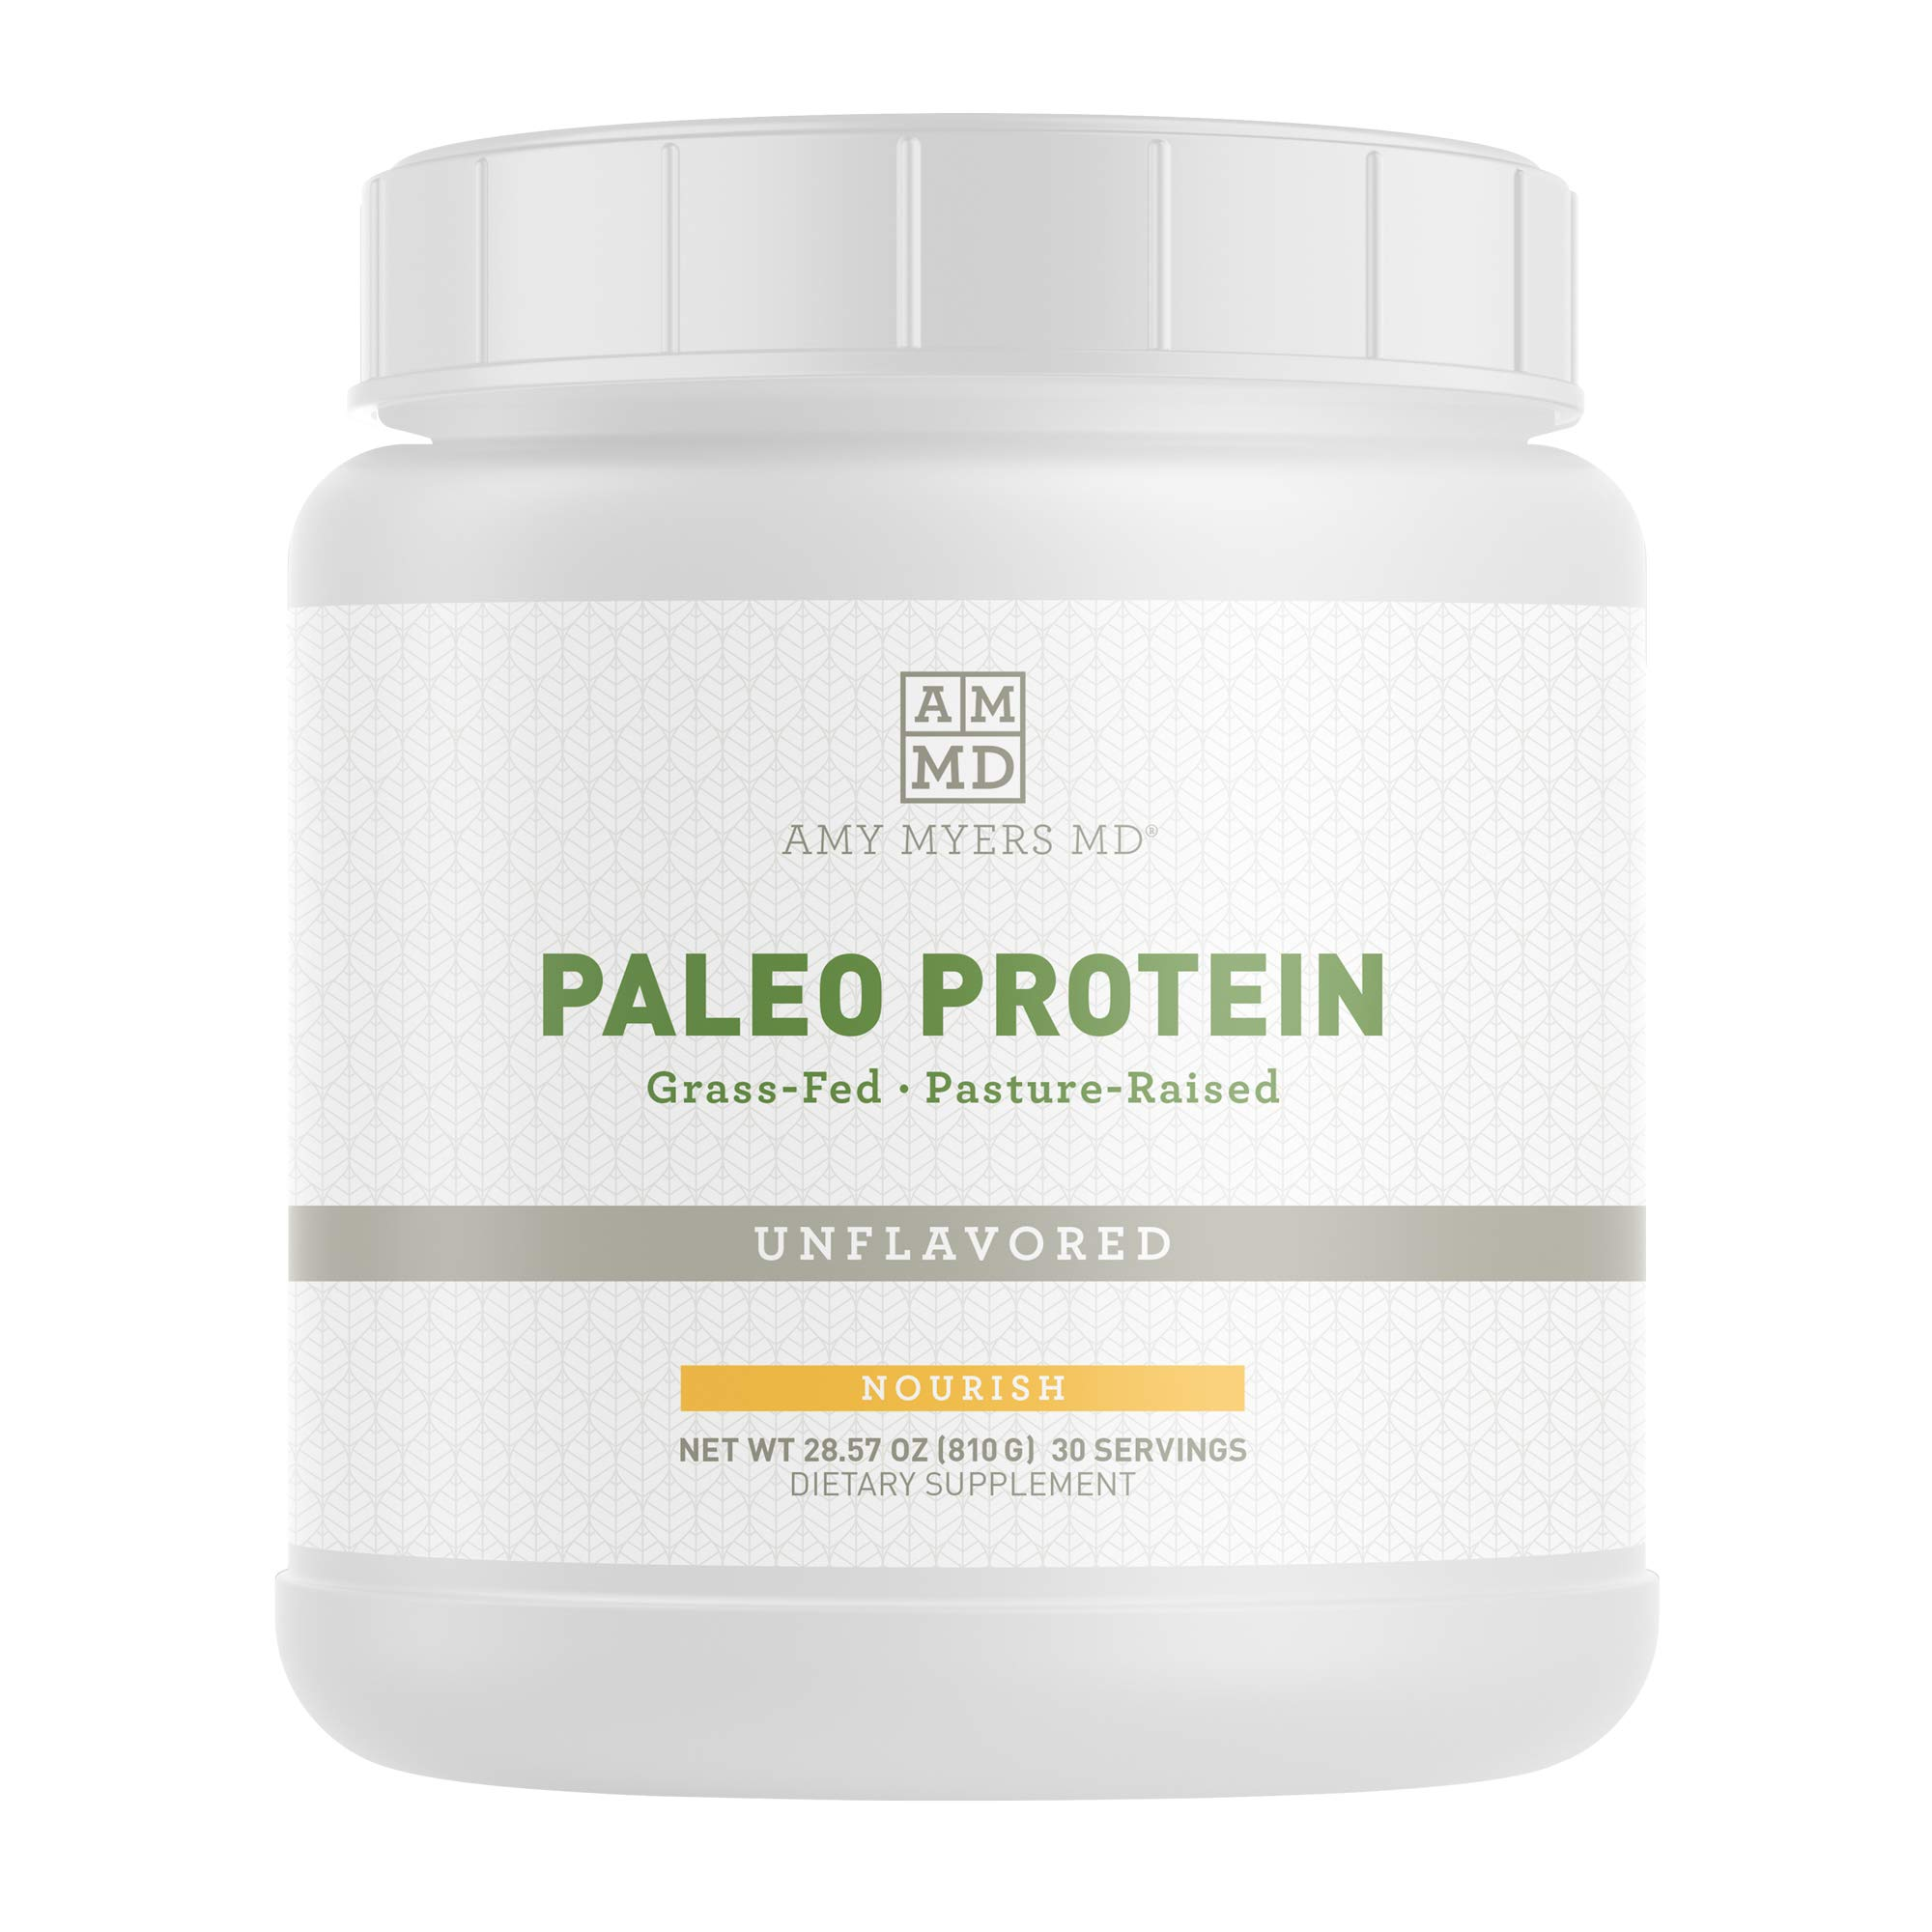 Unflavored Pure Paleo Protein by Dr. Amy Myers - Clean Grass Fed, Pasture Raised Hormone Free Protein, Non-GMO, Gluten & Dairy Free - 26g Protein Per Serving - Plain Shake for Paleo and Keto by Amy Myers, MD